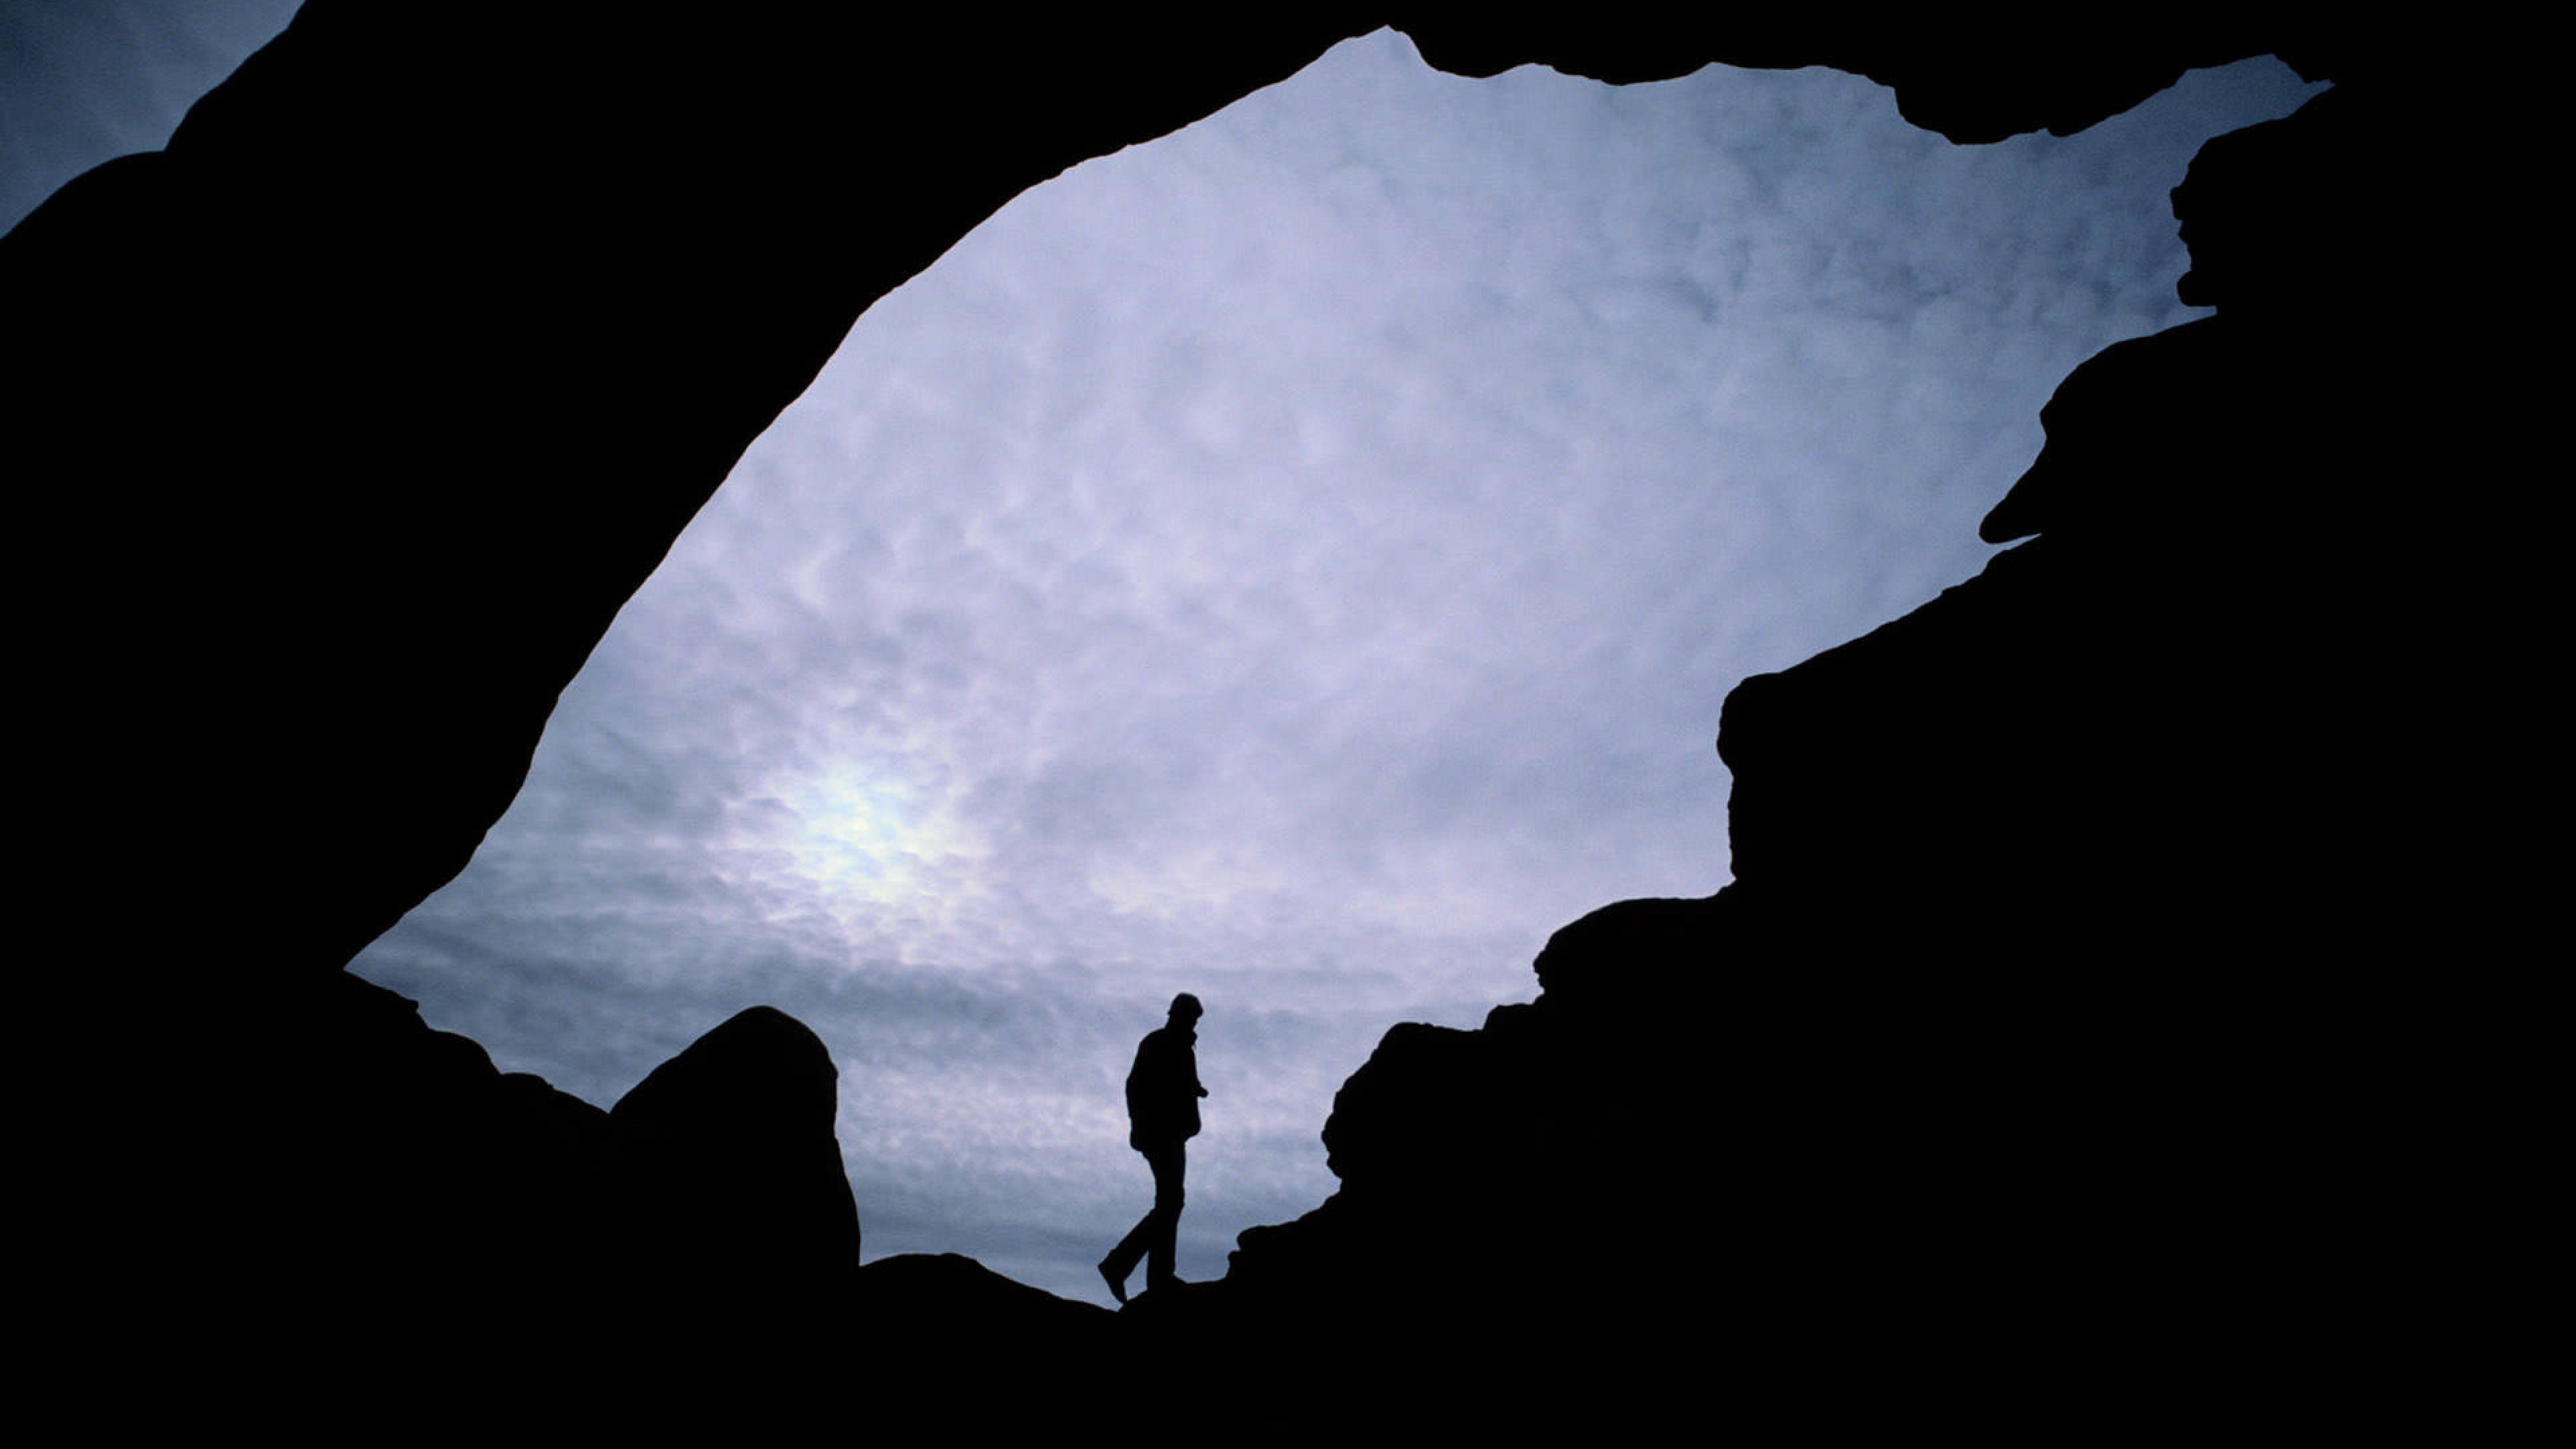 A man in silhouette behind an arch at Arches National Park